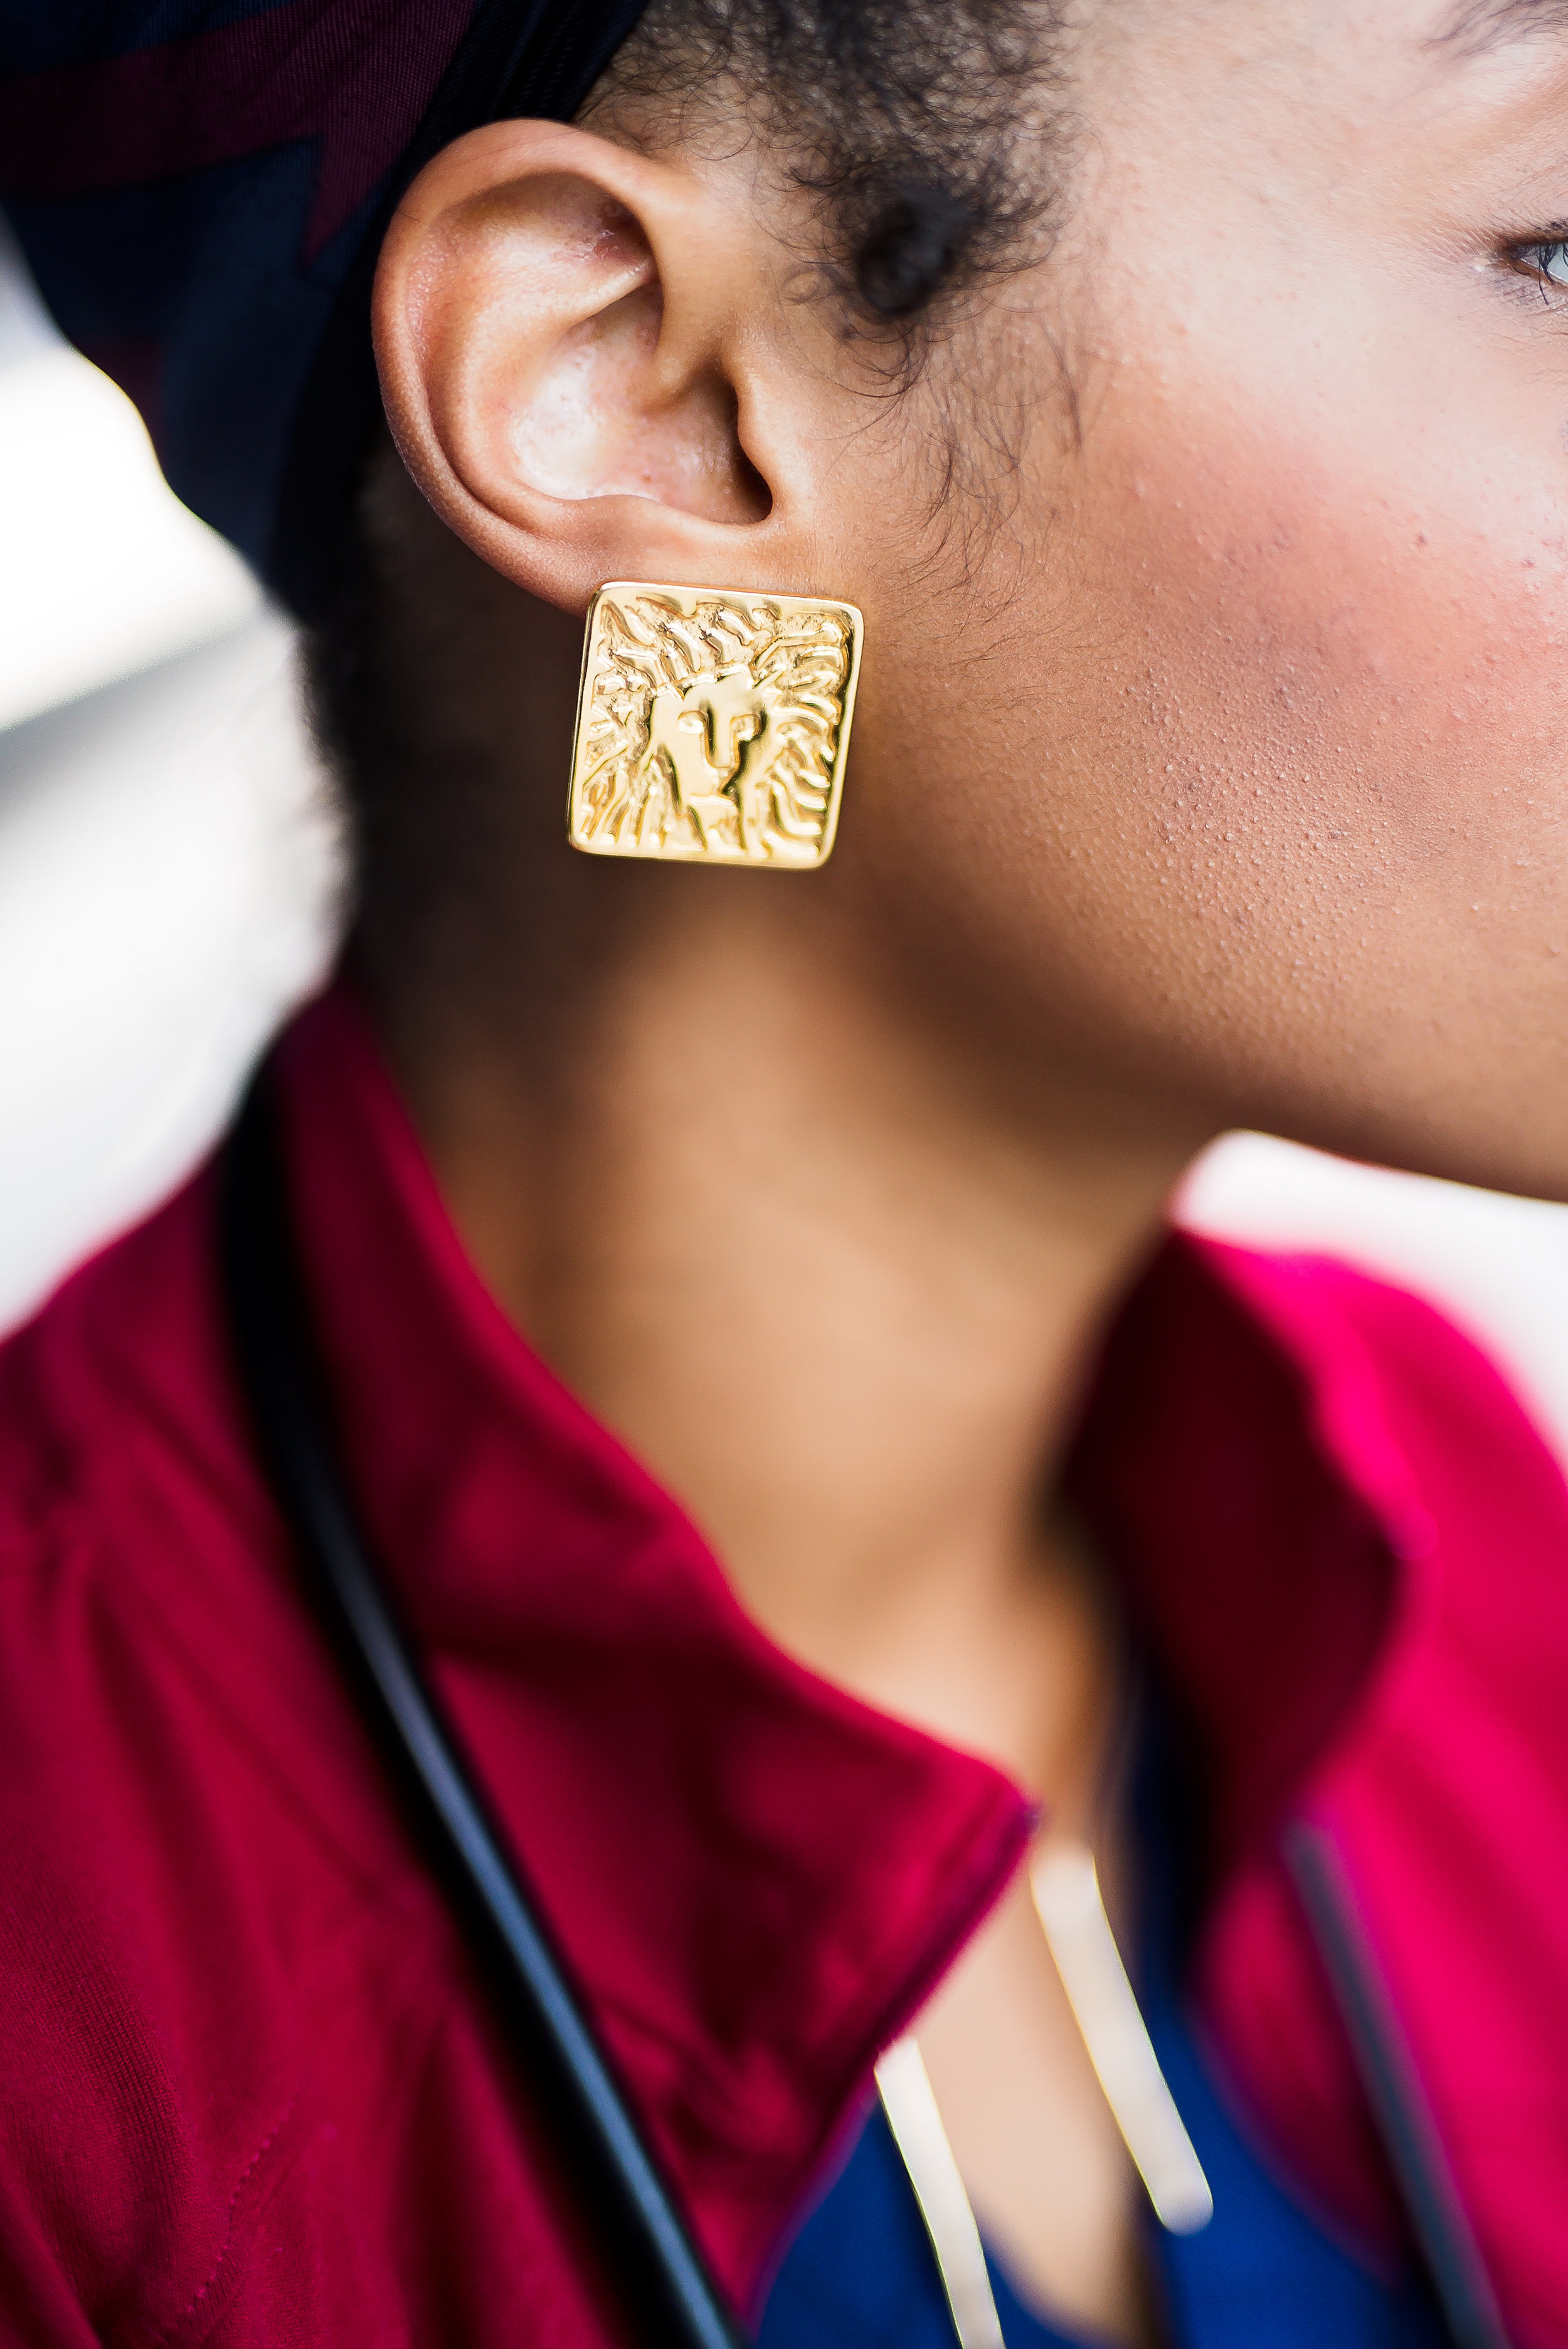 Statement earrings from Ann Klein that I got from my mother.